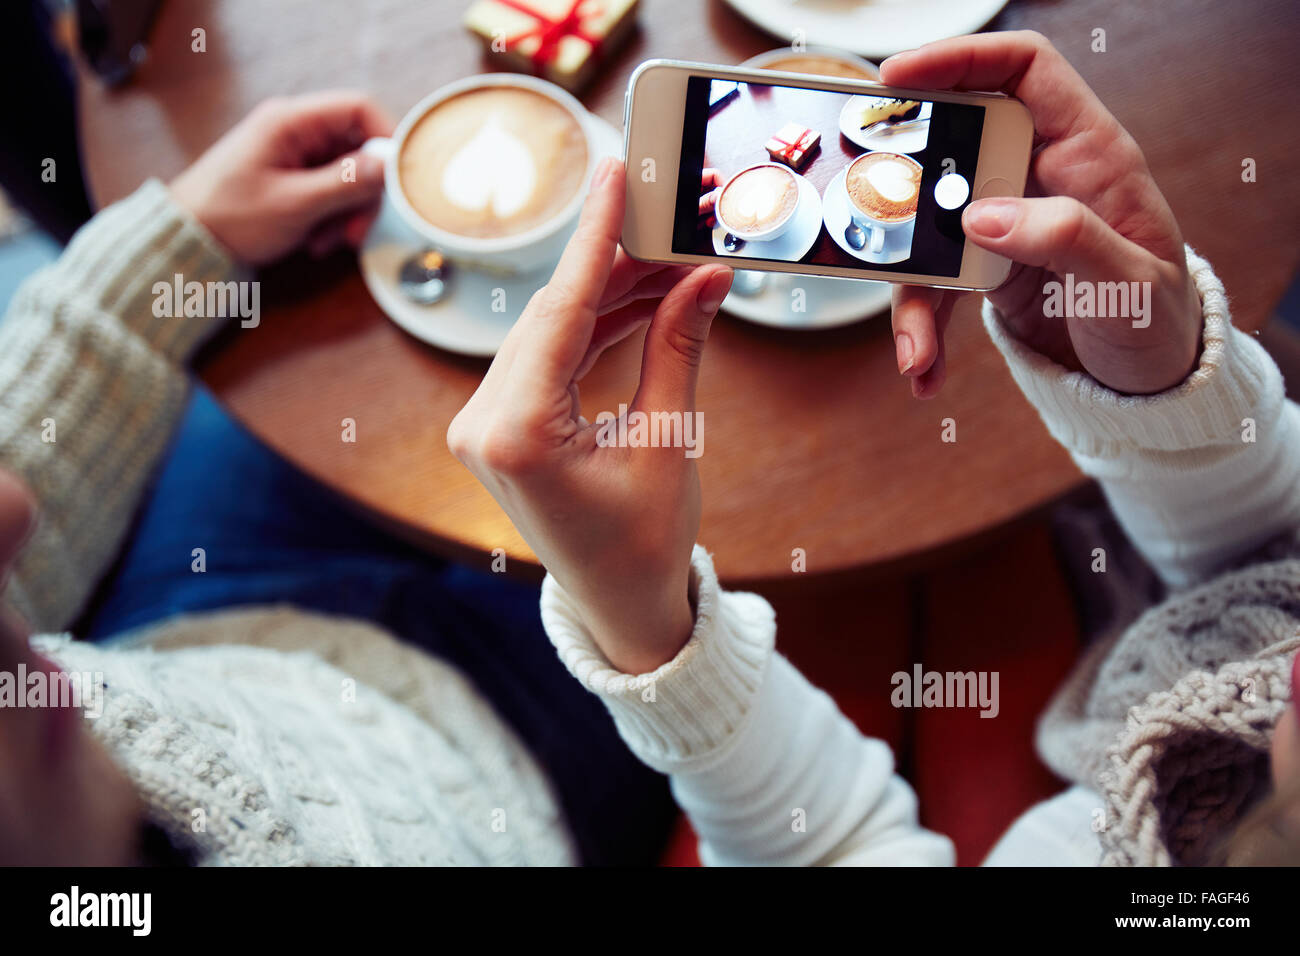 Girl holding smartphone with photo of two cups of coffee - Stock Image